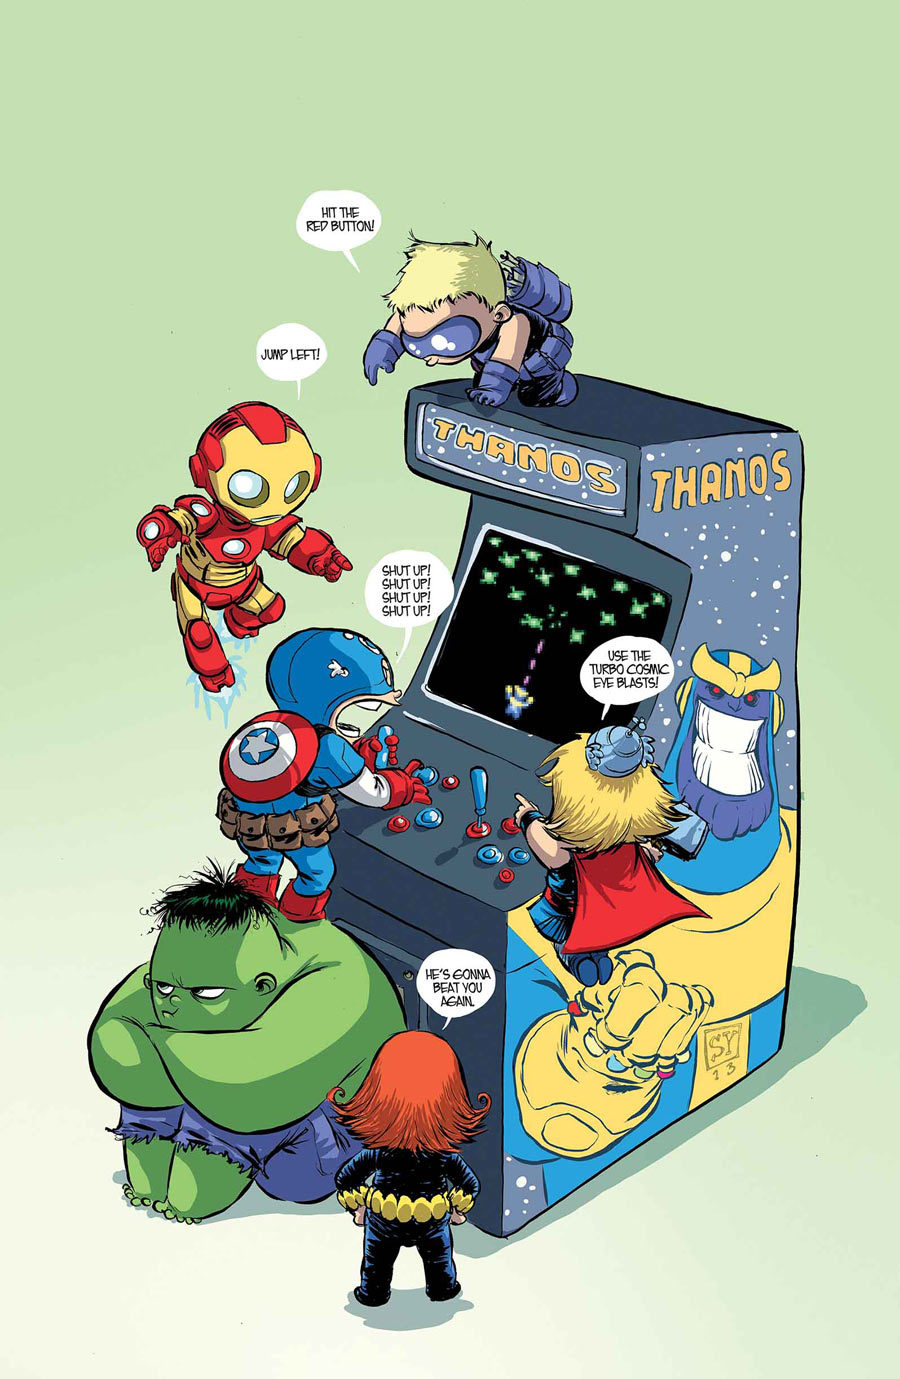 coversdaily:  INFINITY #1  By Skottie Young